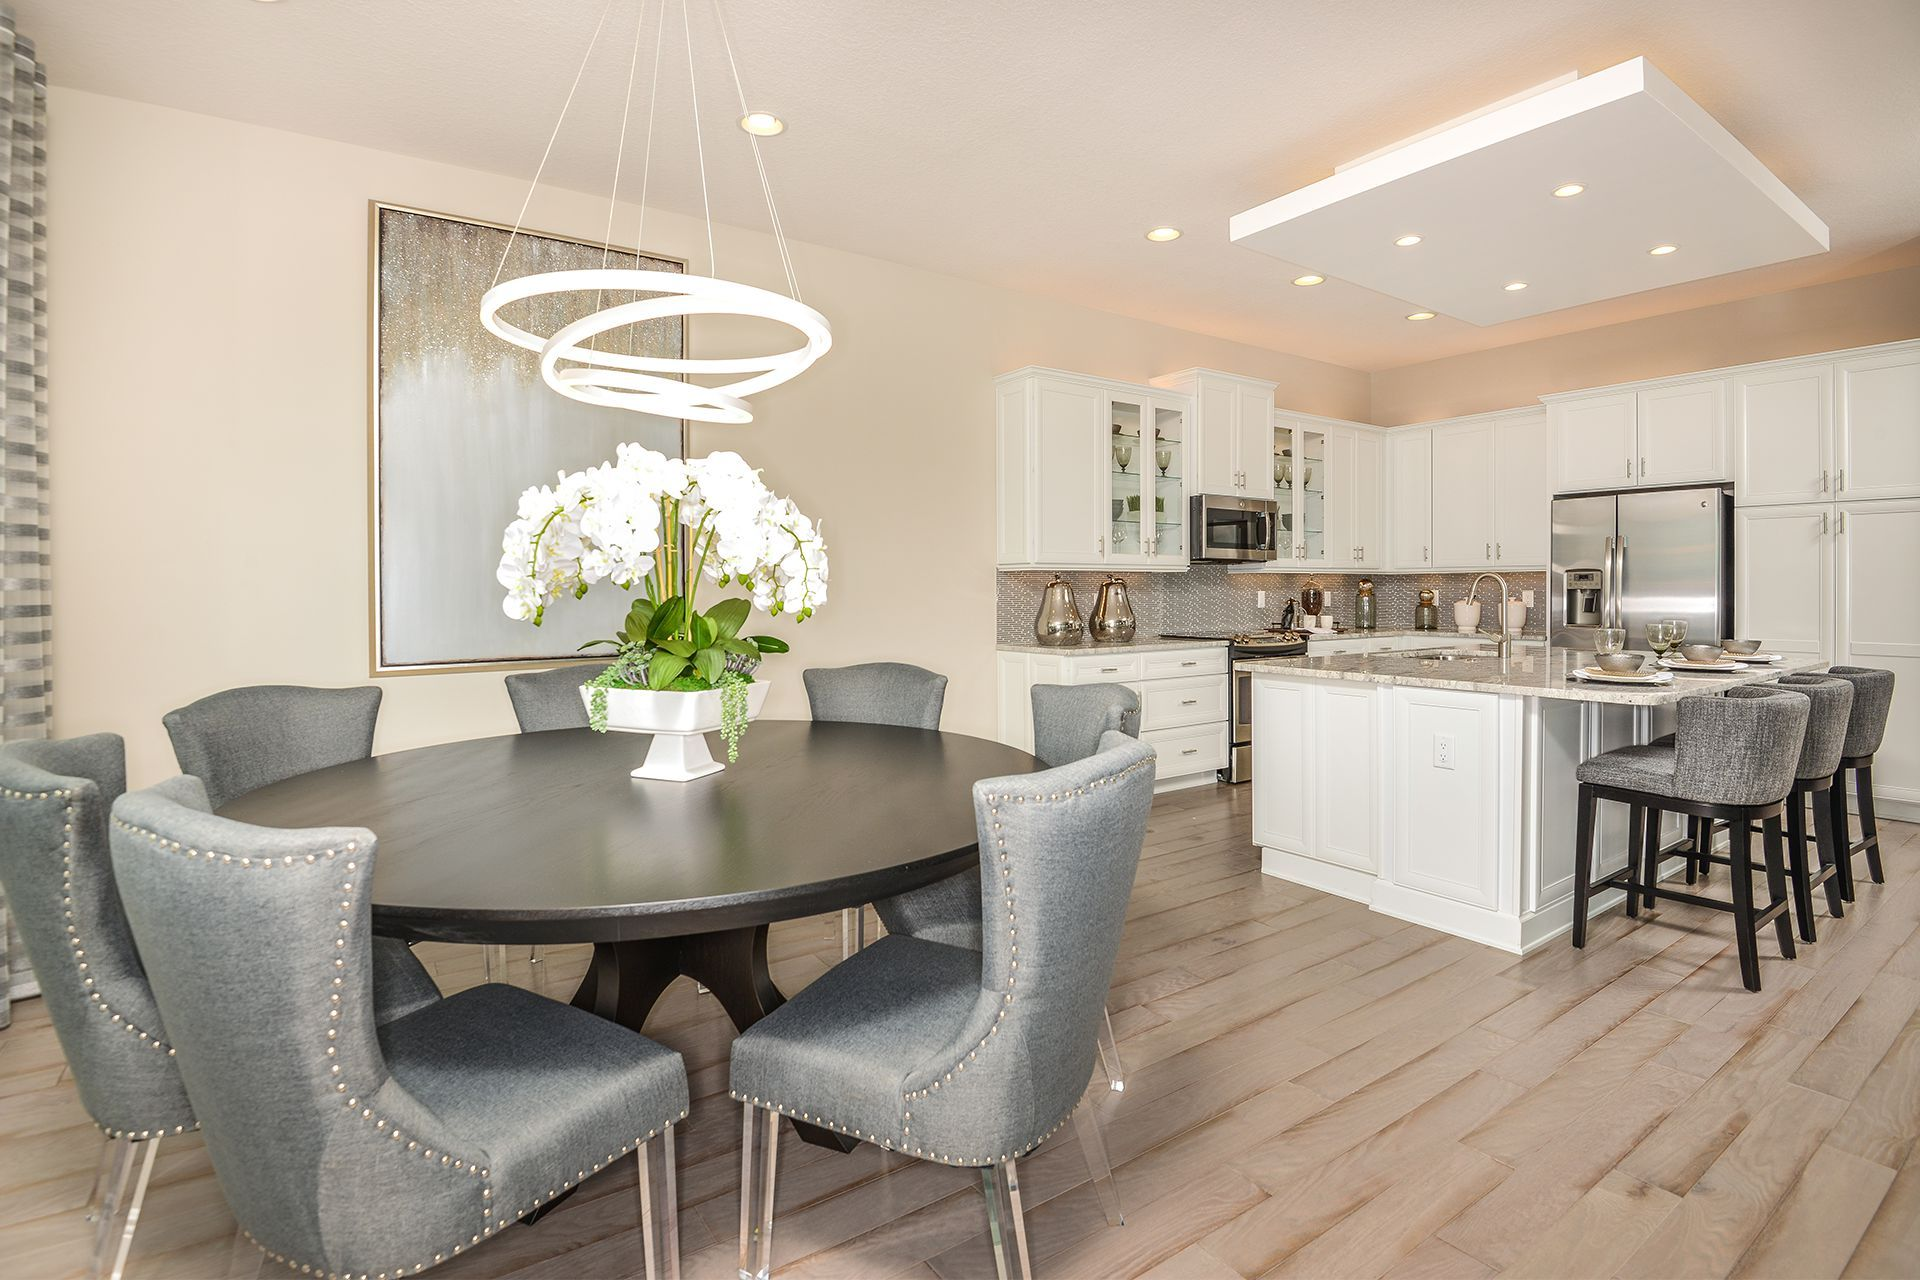 Kitchen featured in the Aruba By GL Homes in Tampa-St. Petersburg, FL